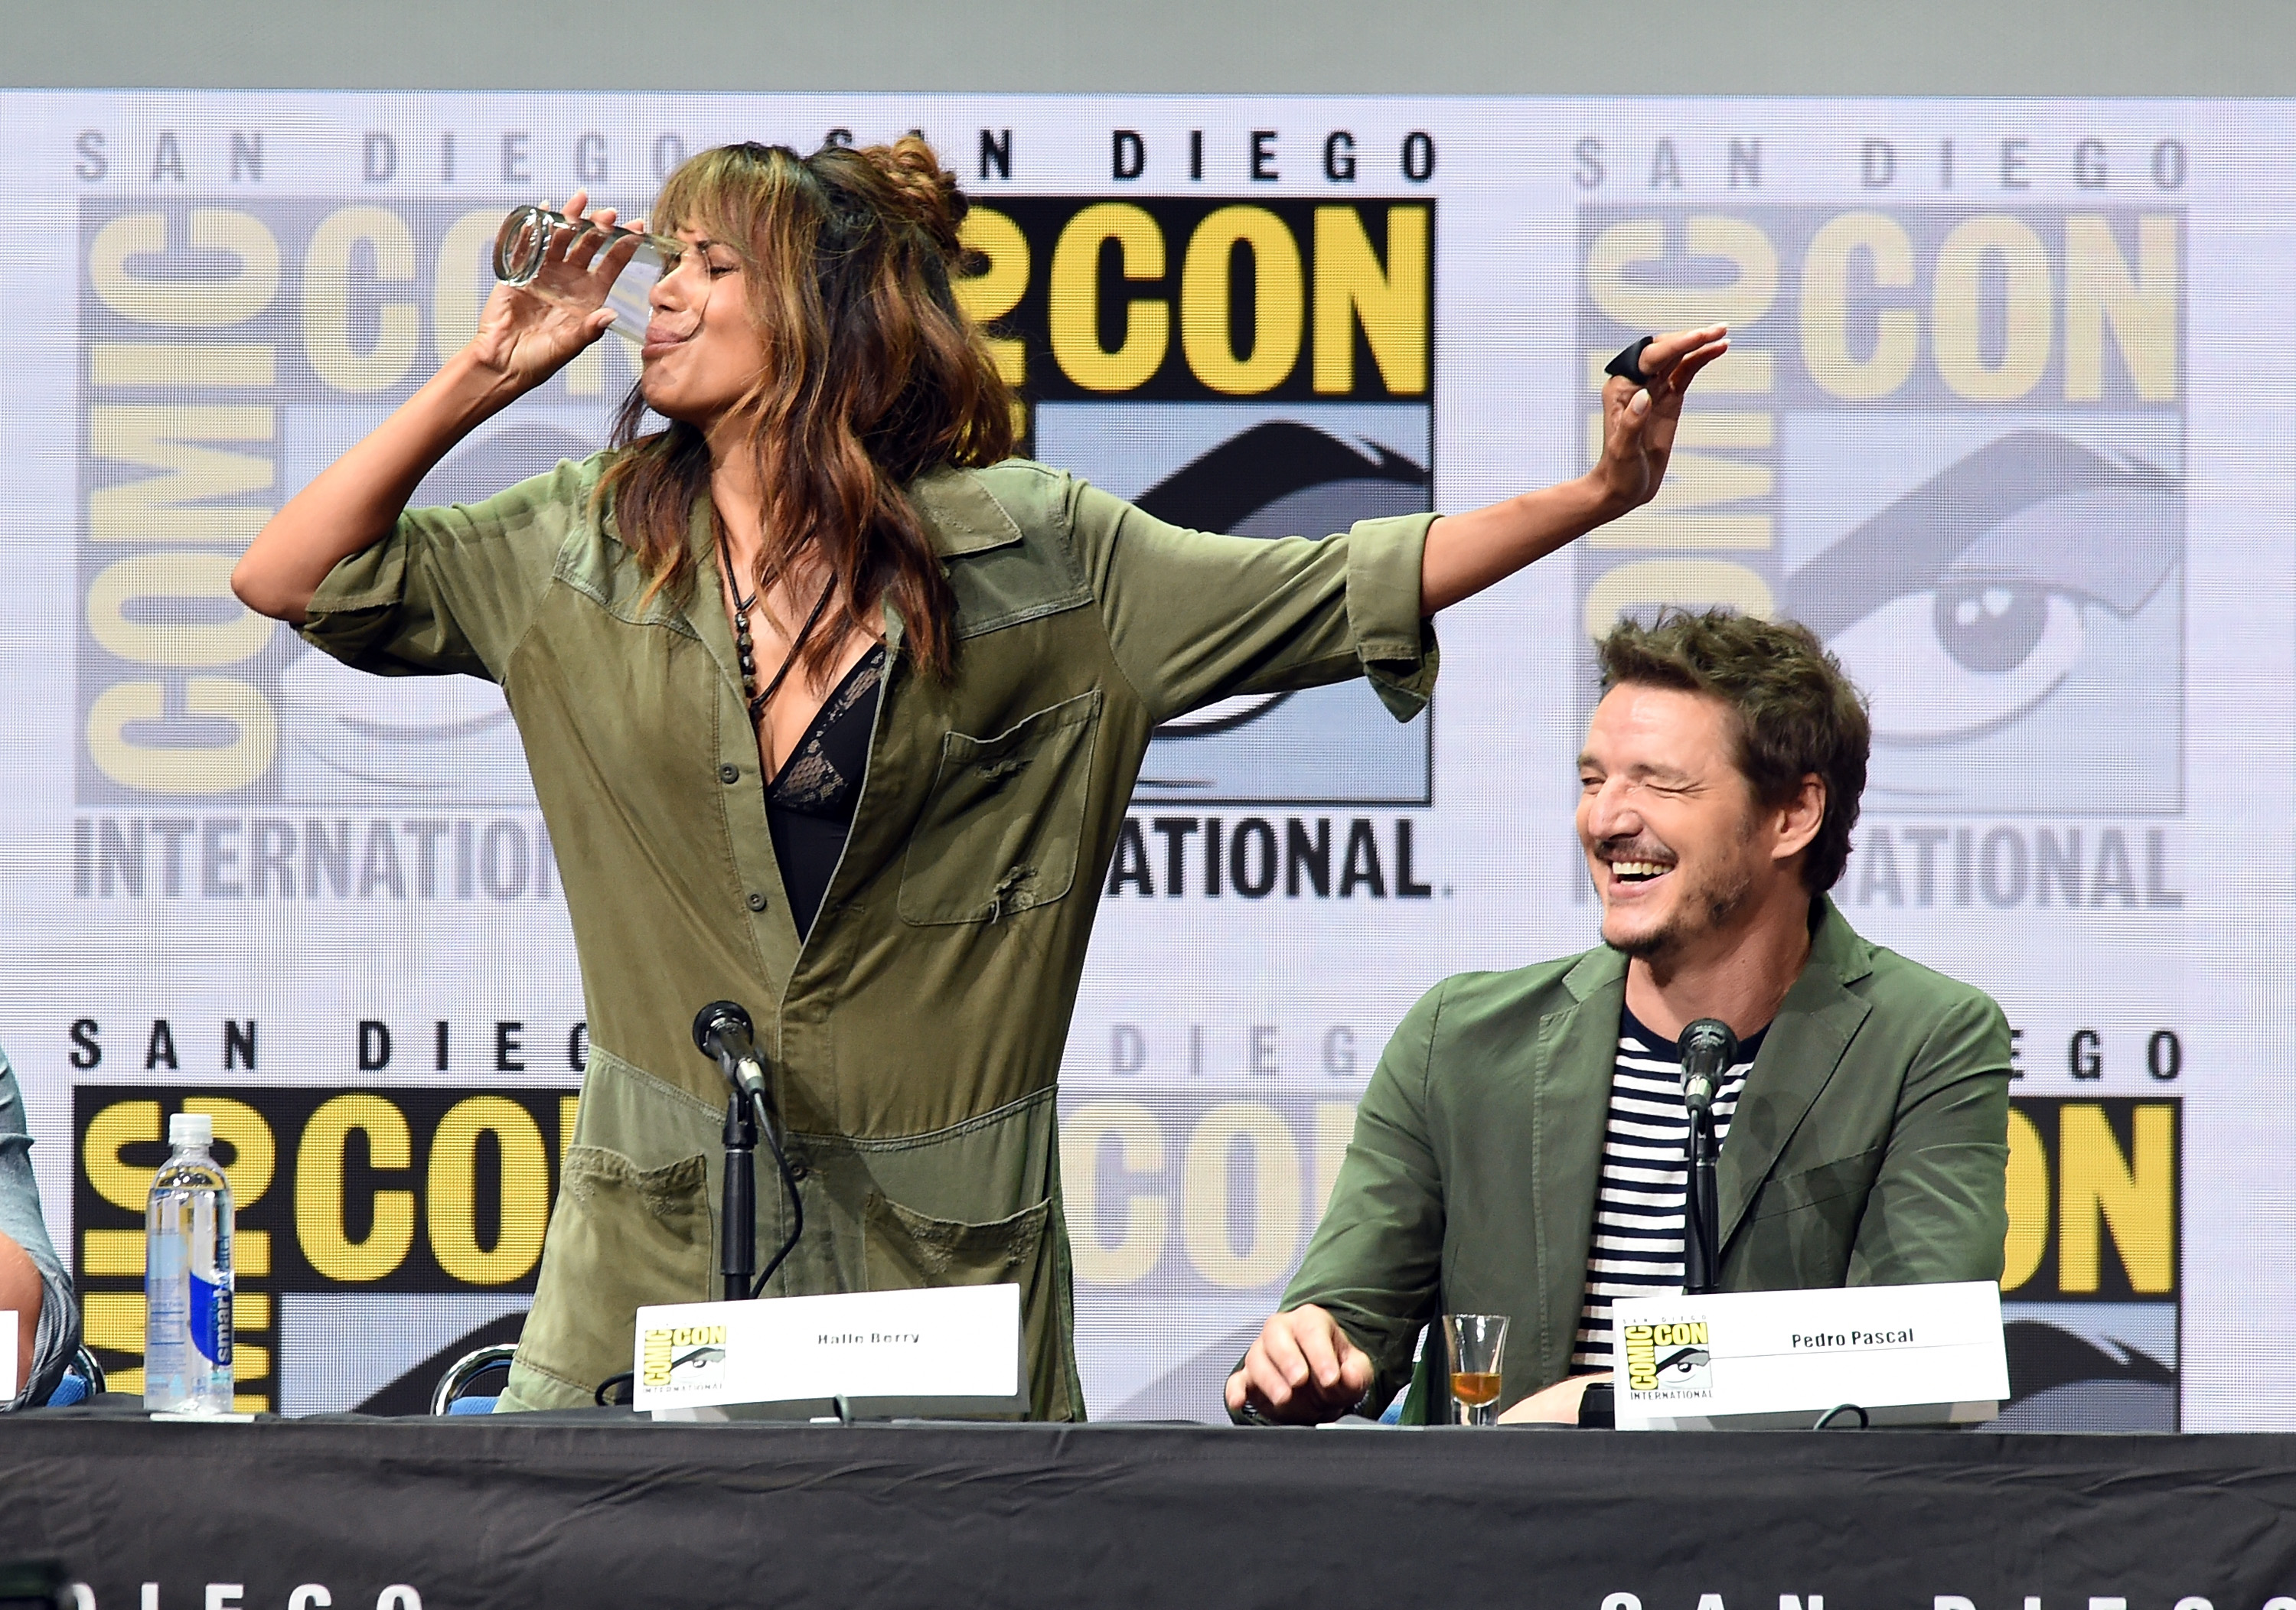 SAN DIEGO, CA - JULY 20:  Actor Halle Berry (L) takes a drink onstage while actor Pedro Pascal looks on at the 20th Century FOX panel during Comic-Con International 2017 at San Diego Convention Center on July 20, 2017 in San Diego, California.  (Photo by Kevin Winter/Getty Images)